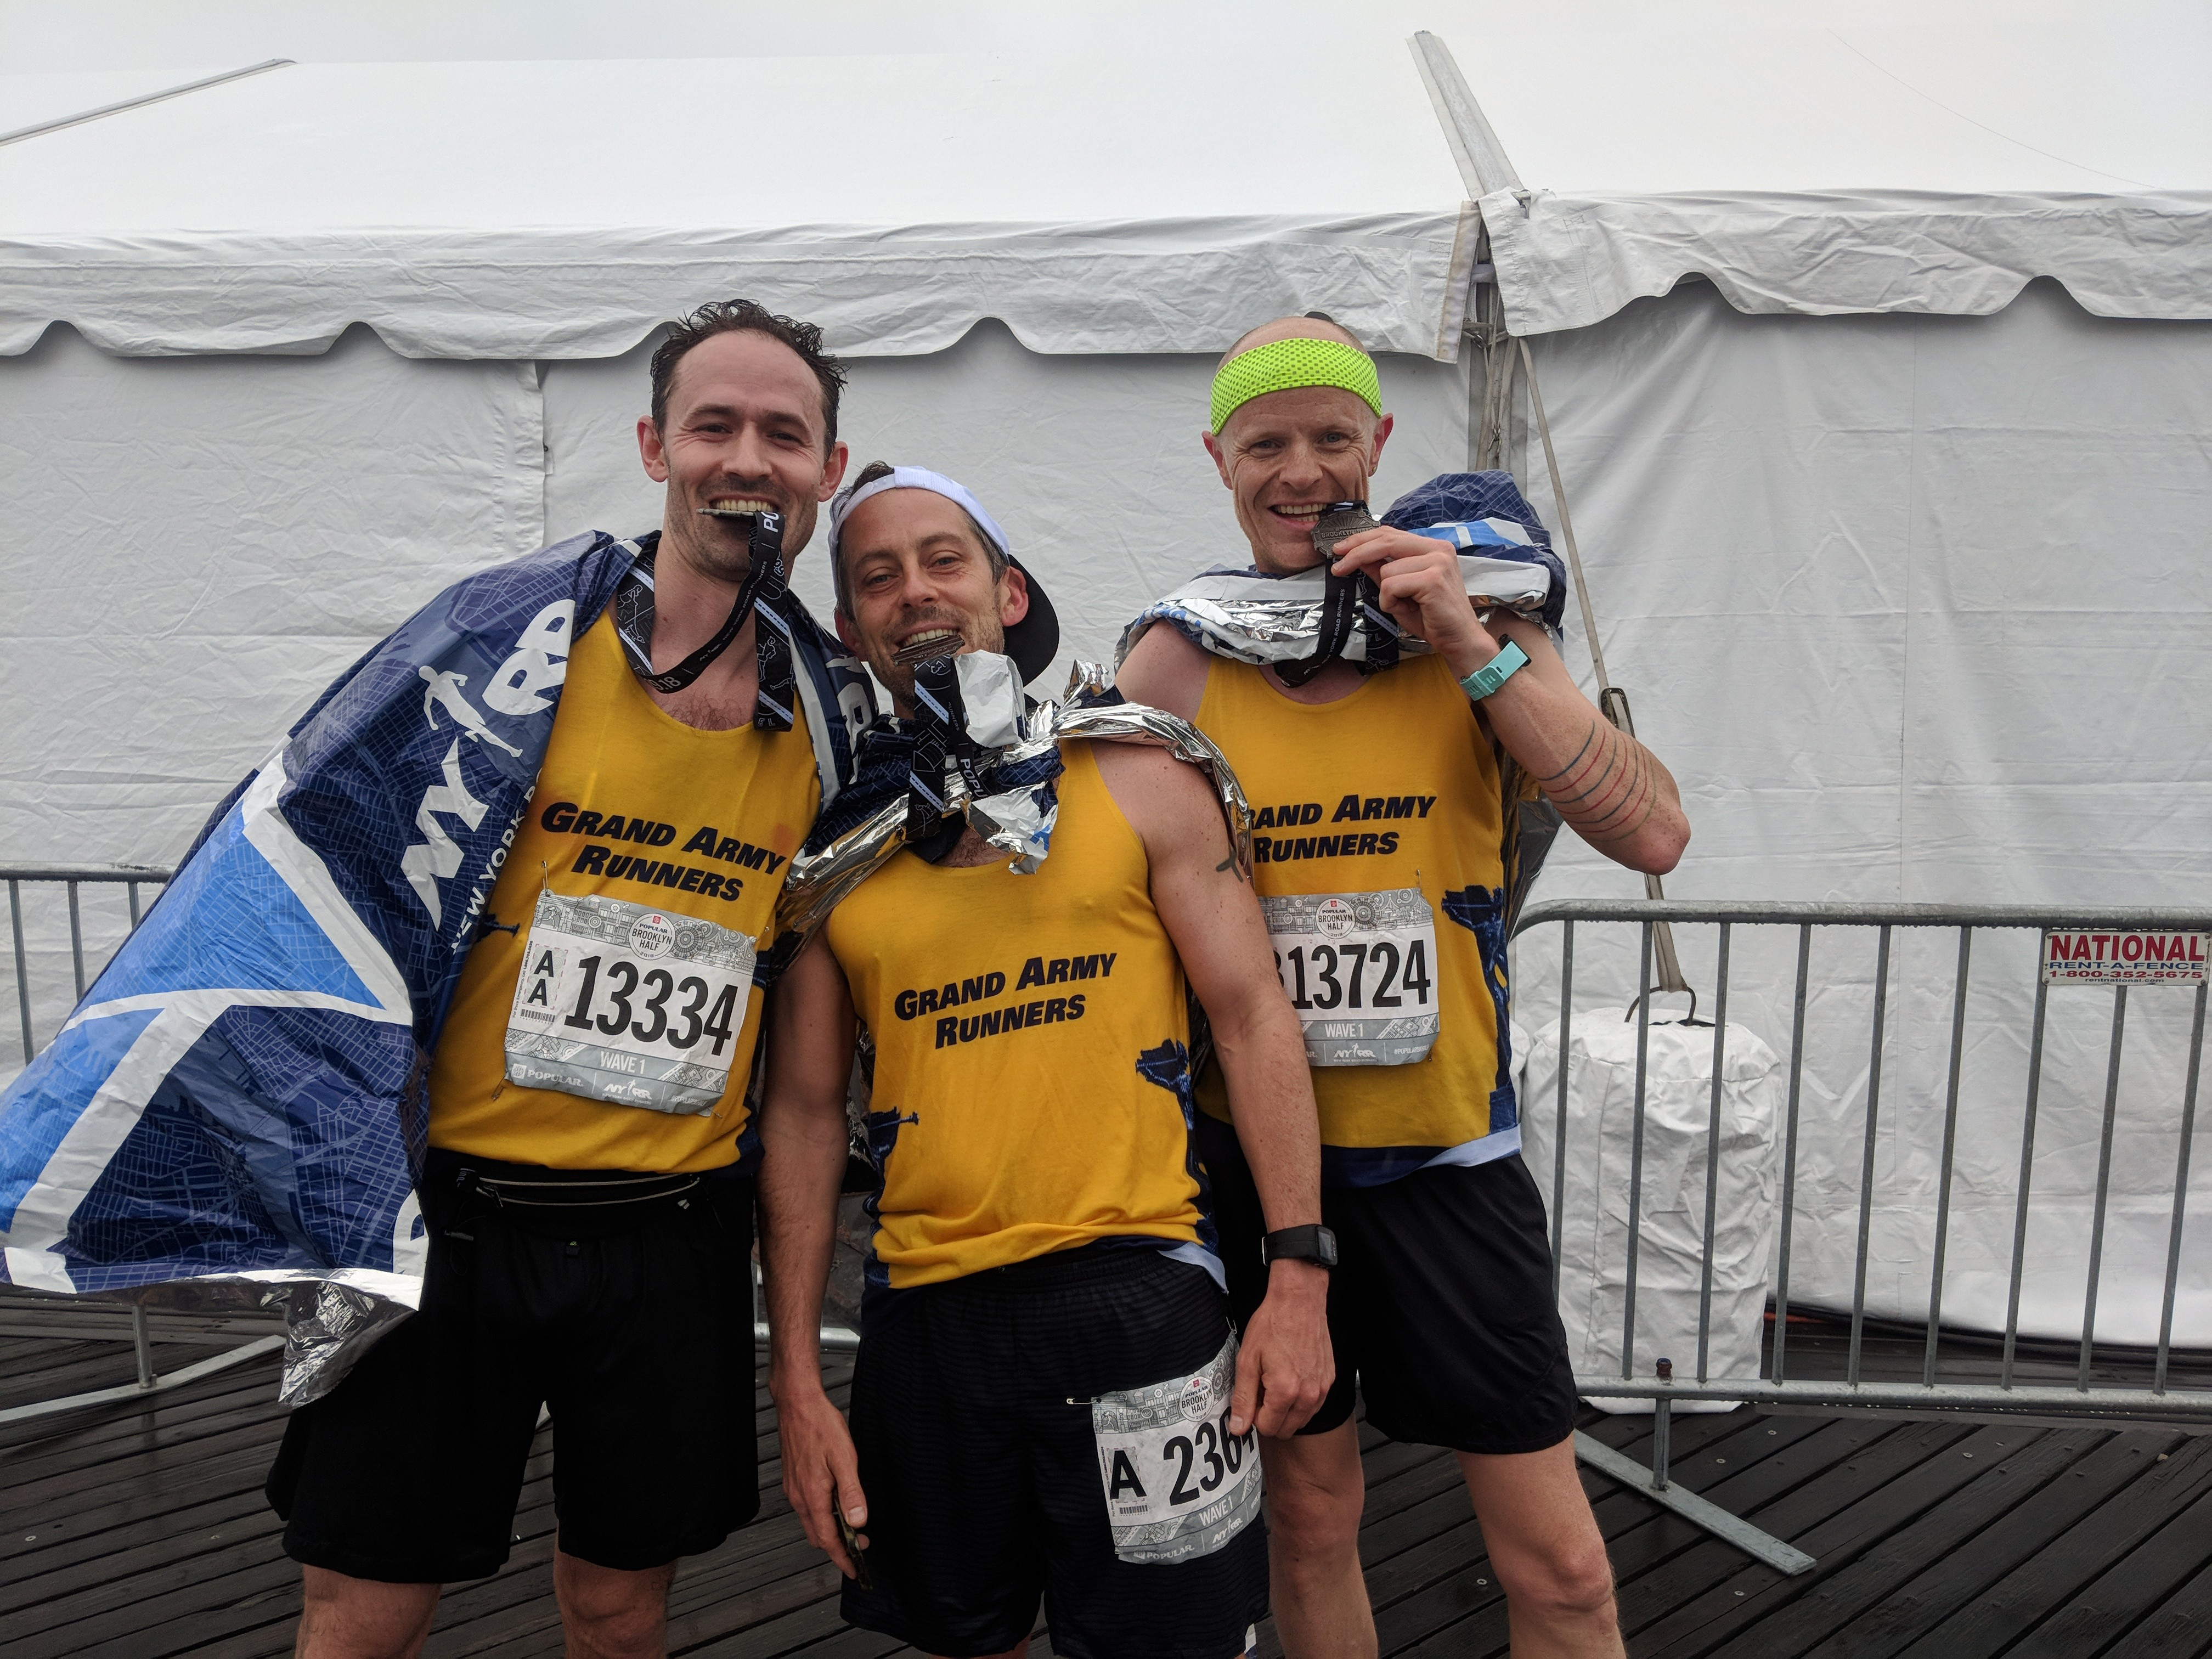 NYRR Member James Cameron and his running team The Grand Army Runners after a race